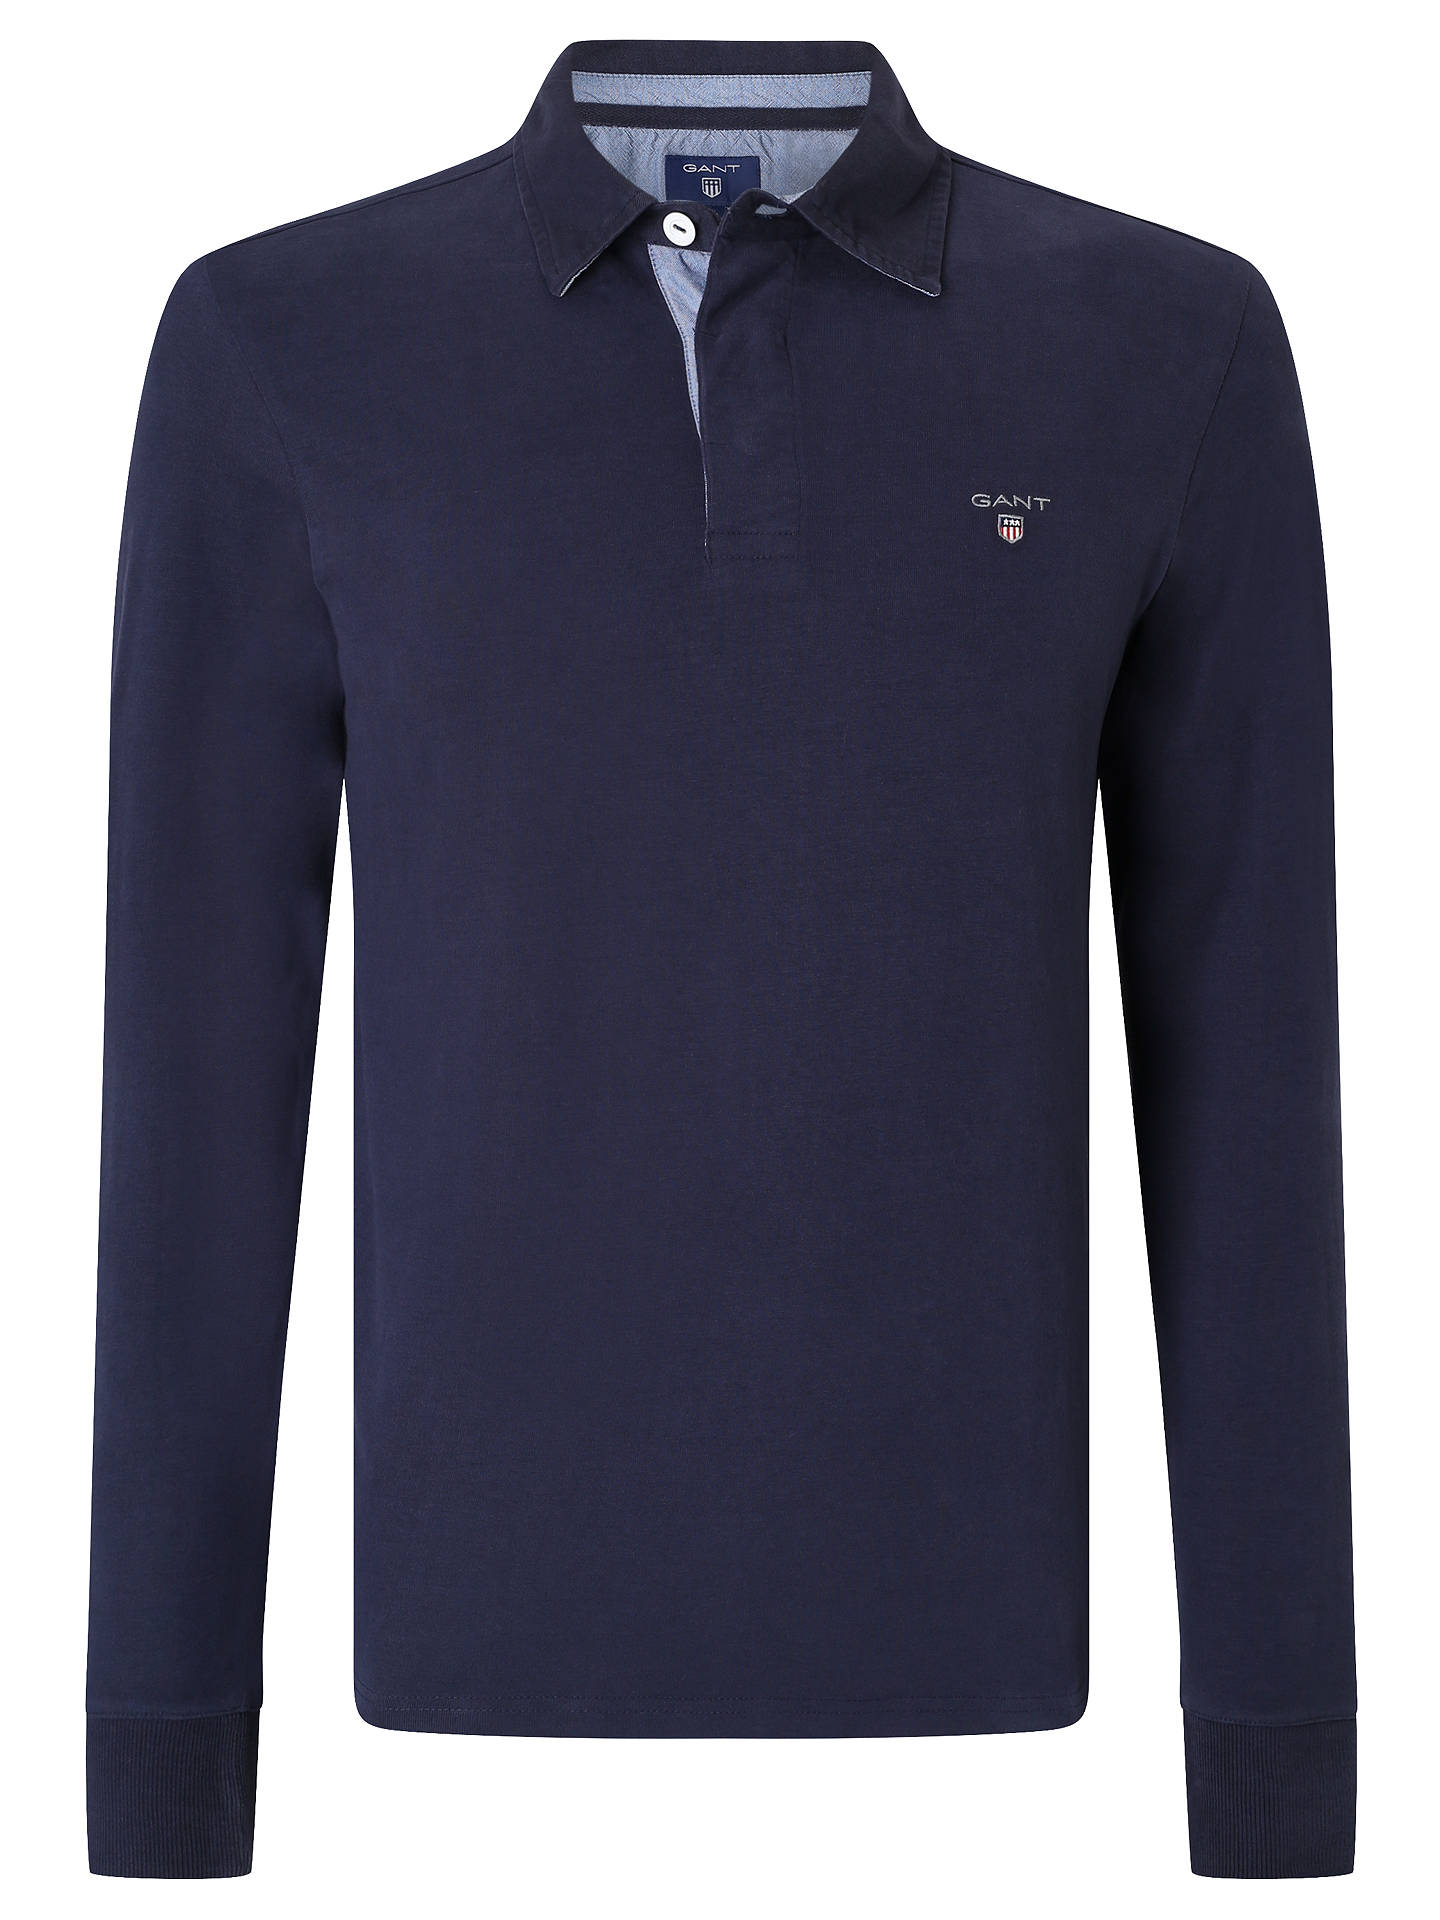 65033e15ac Buy Gant Solid Cotton Rugby Shirt, Evening Blue, M Online at johnlewis.com  ...